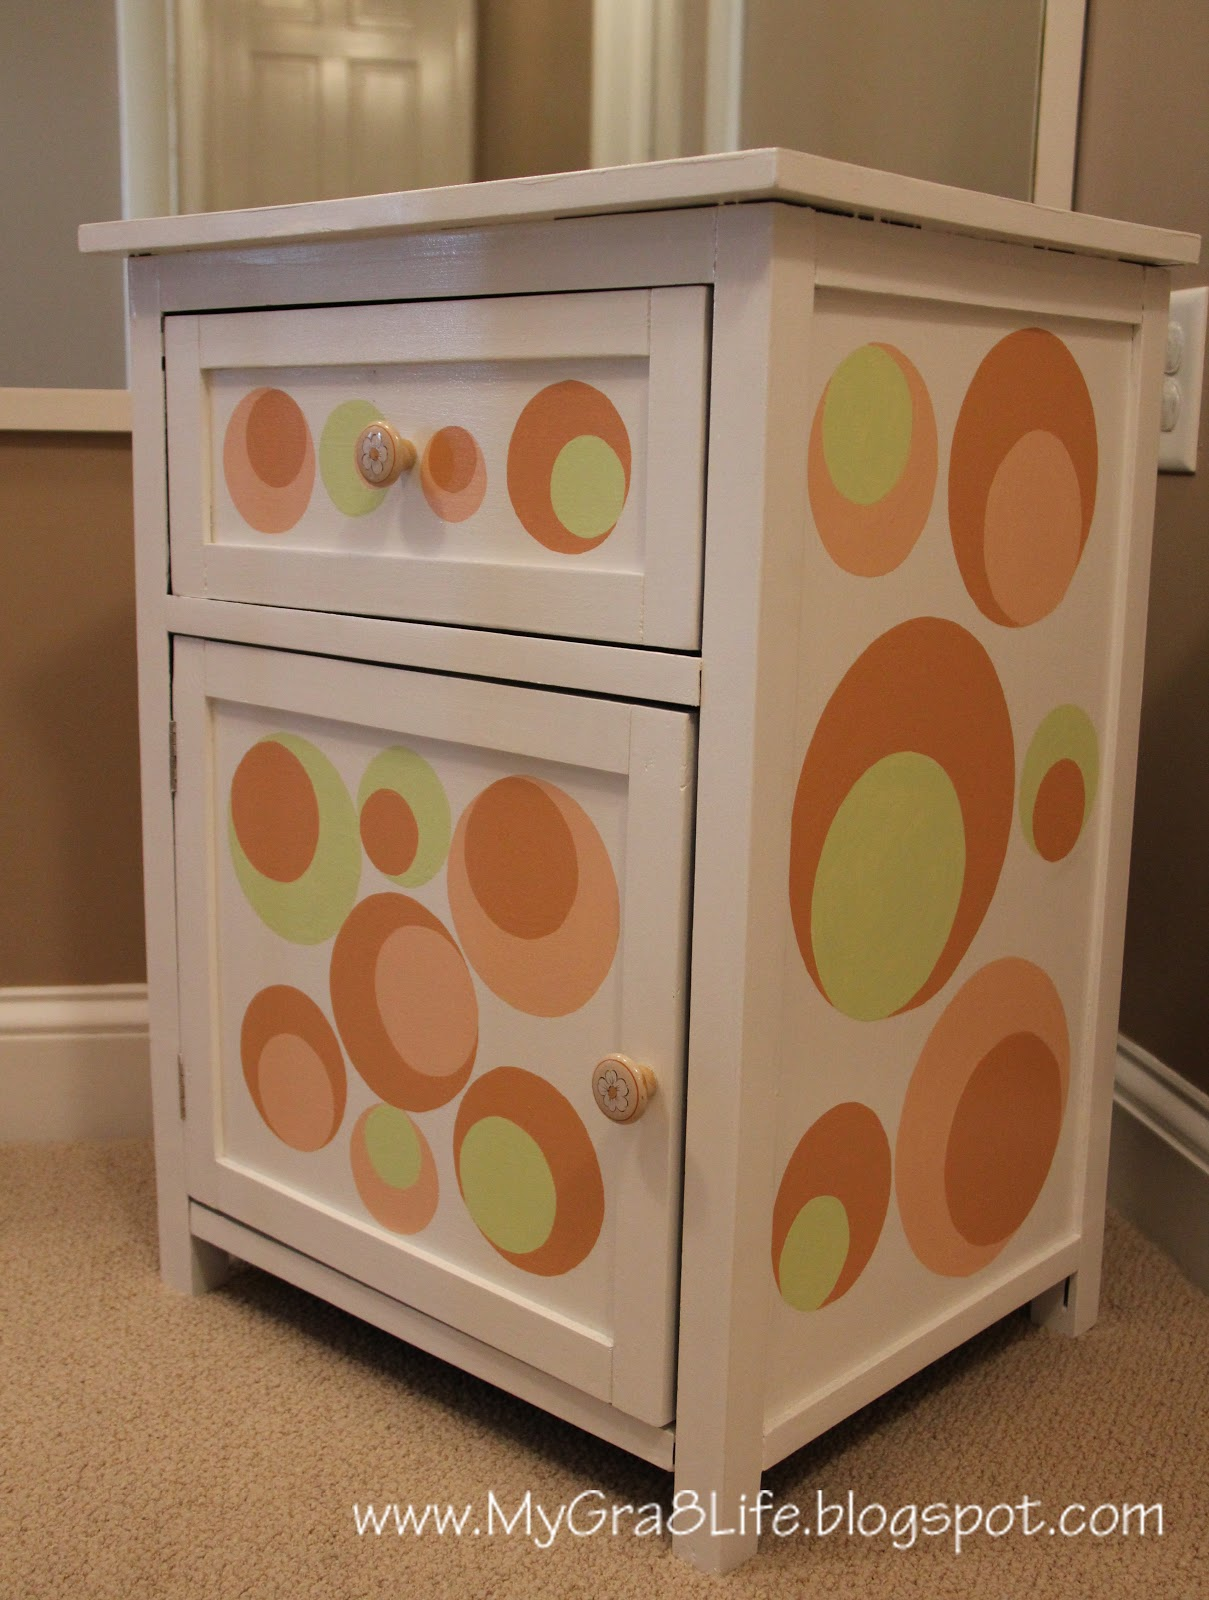 My Gra 8 Life: Painted Furniture - Fun & Classy!